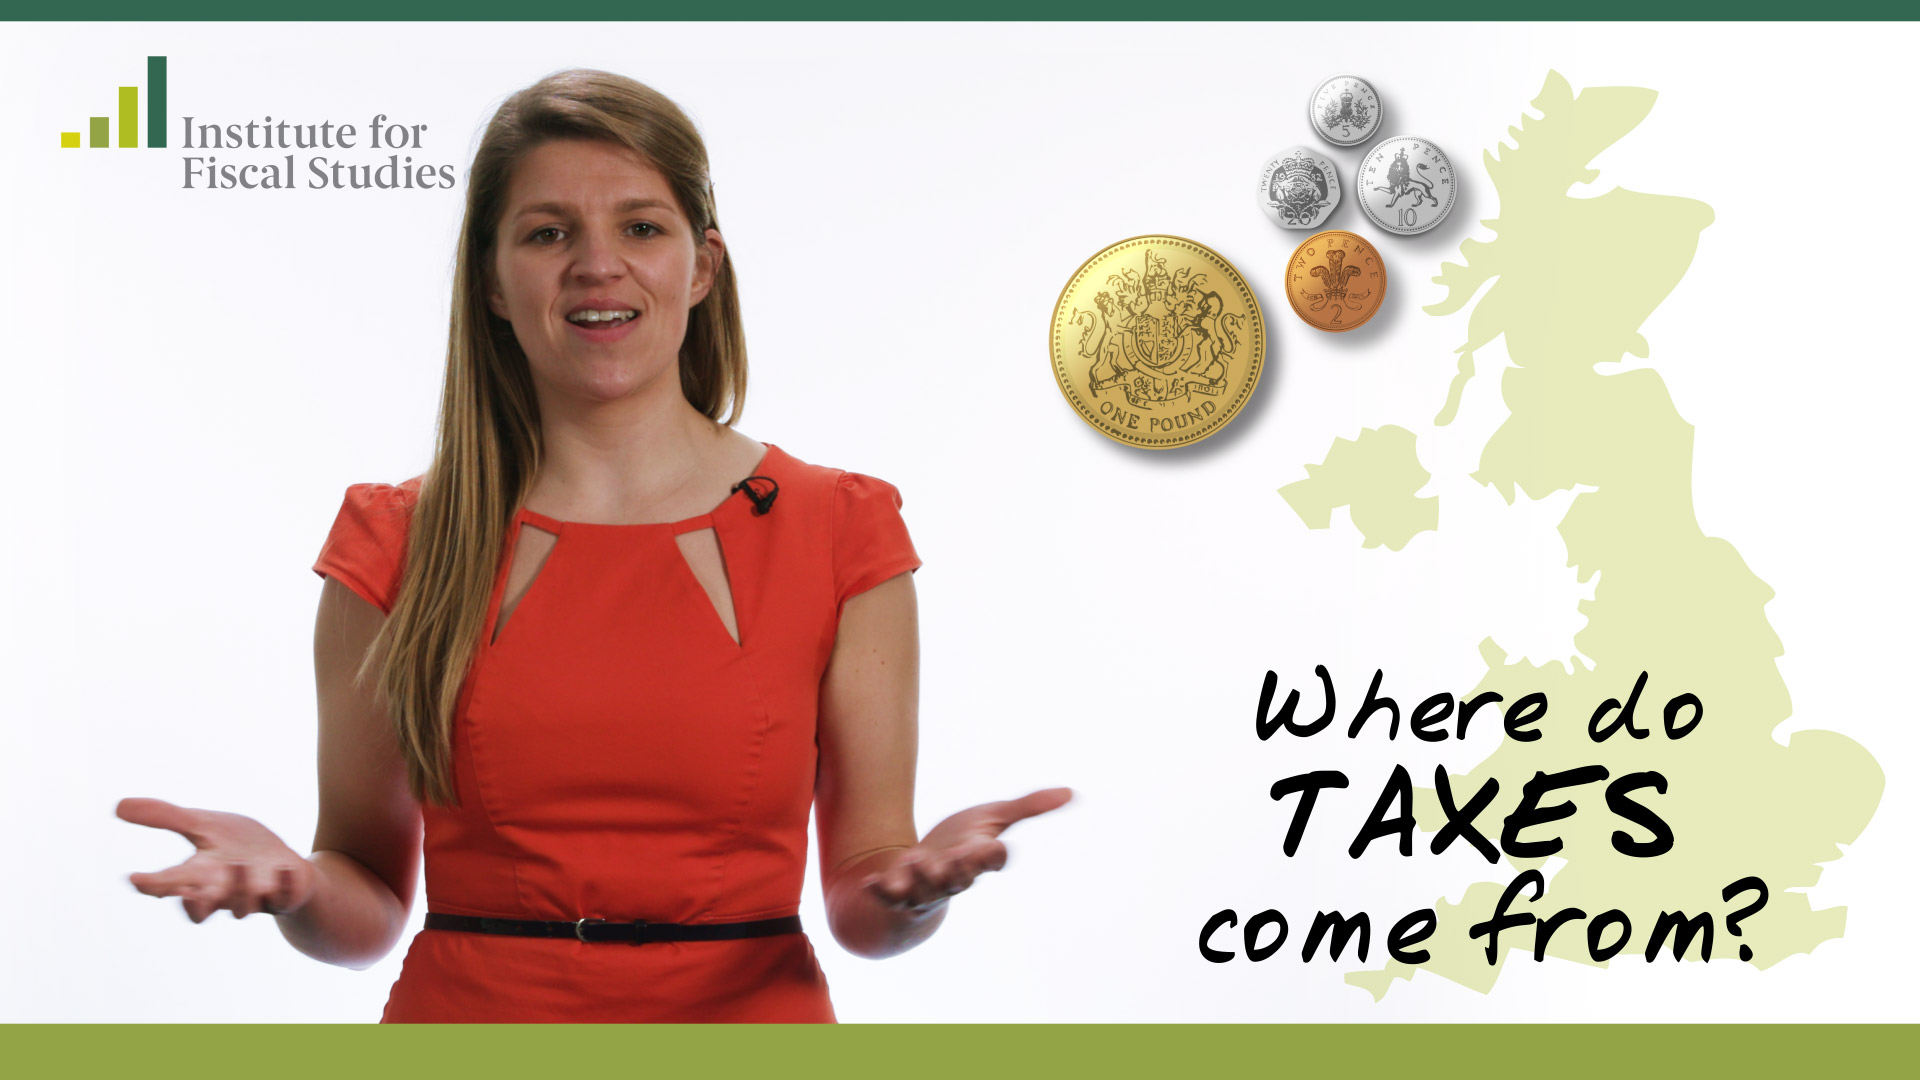 https://www.ifs.org.uk/uploads/images/election2017_images/video_thumbnails/Helen%20Where%20do%20taxes%20come%20from.jpg